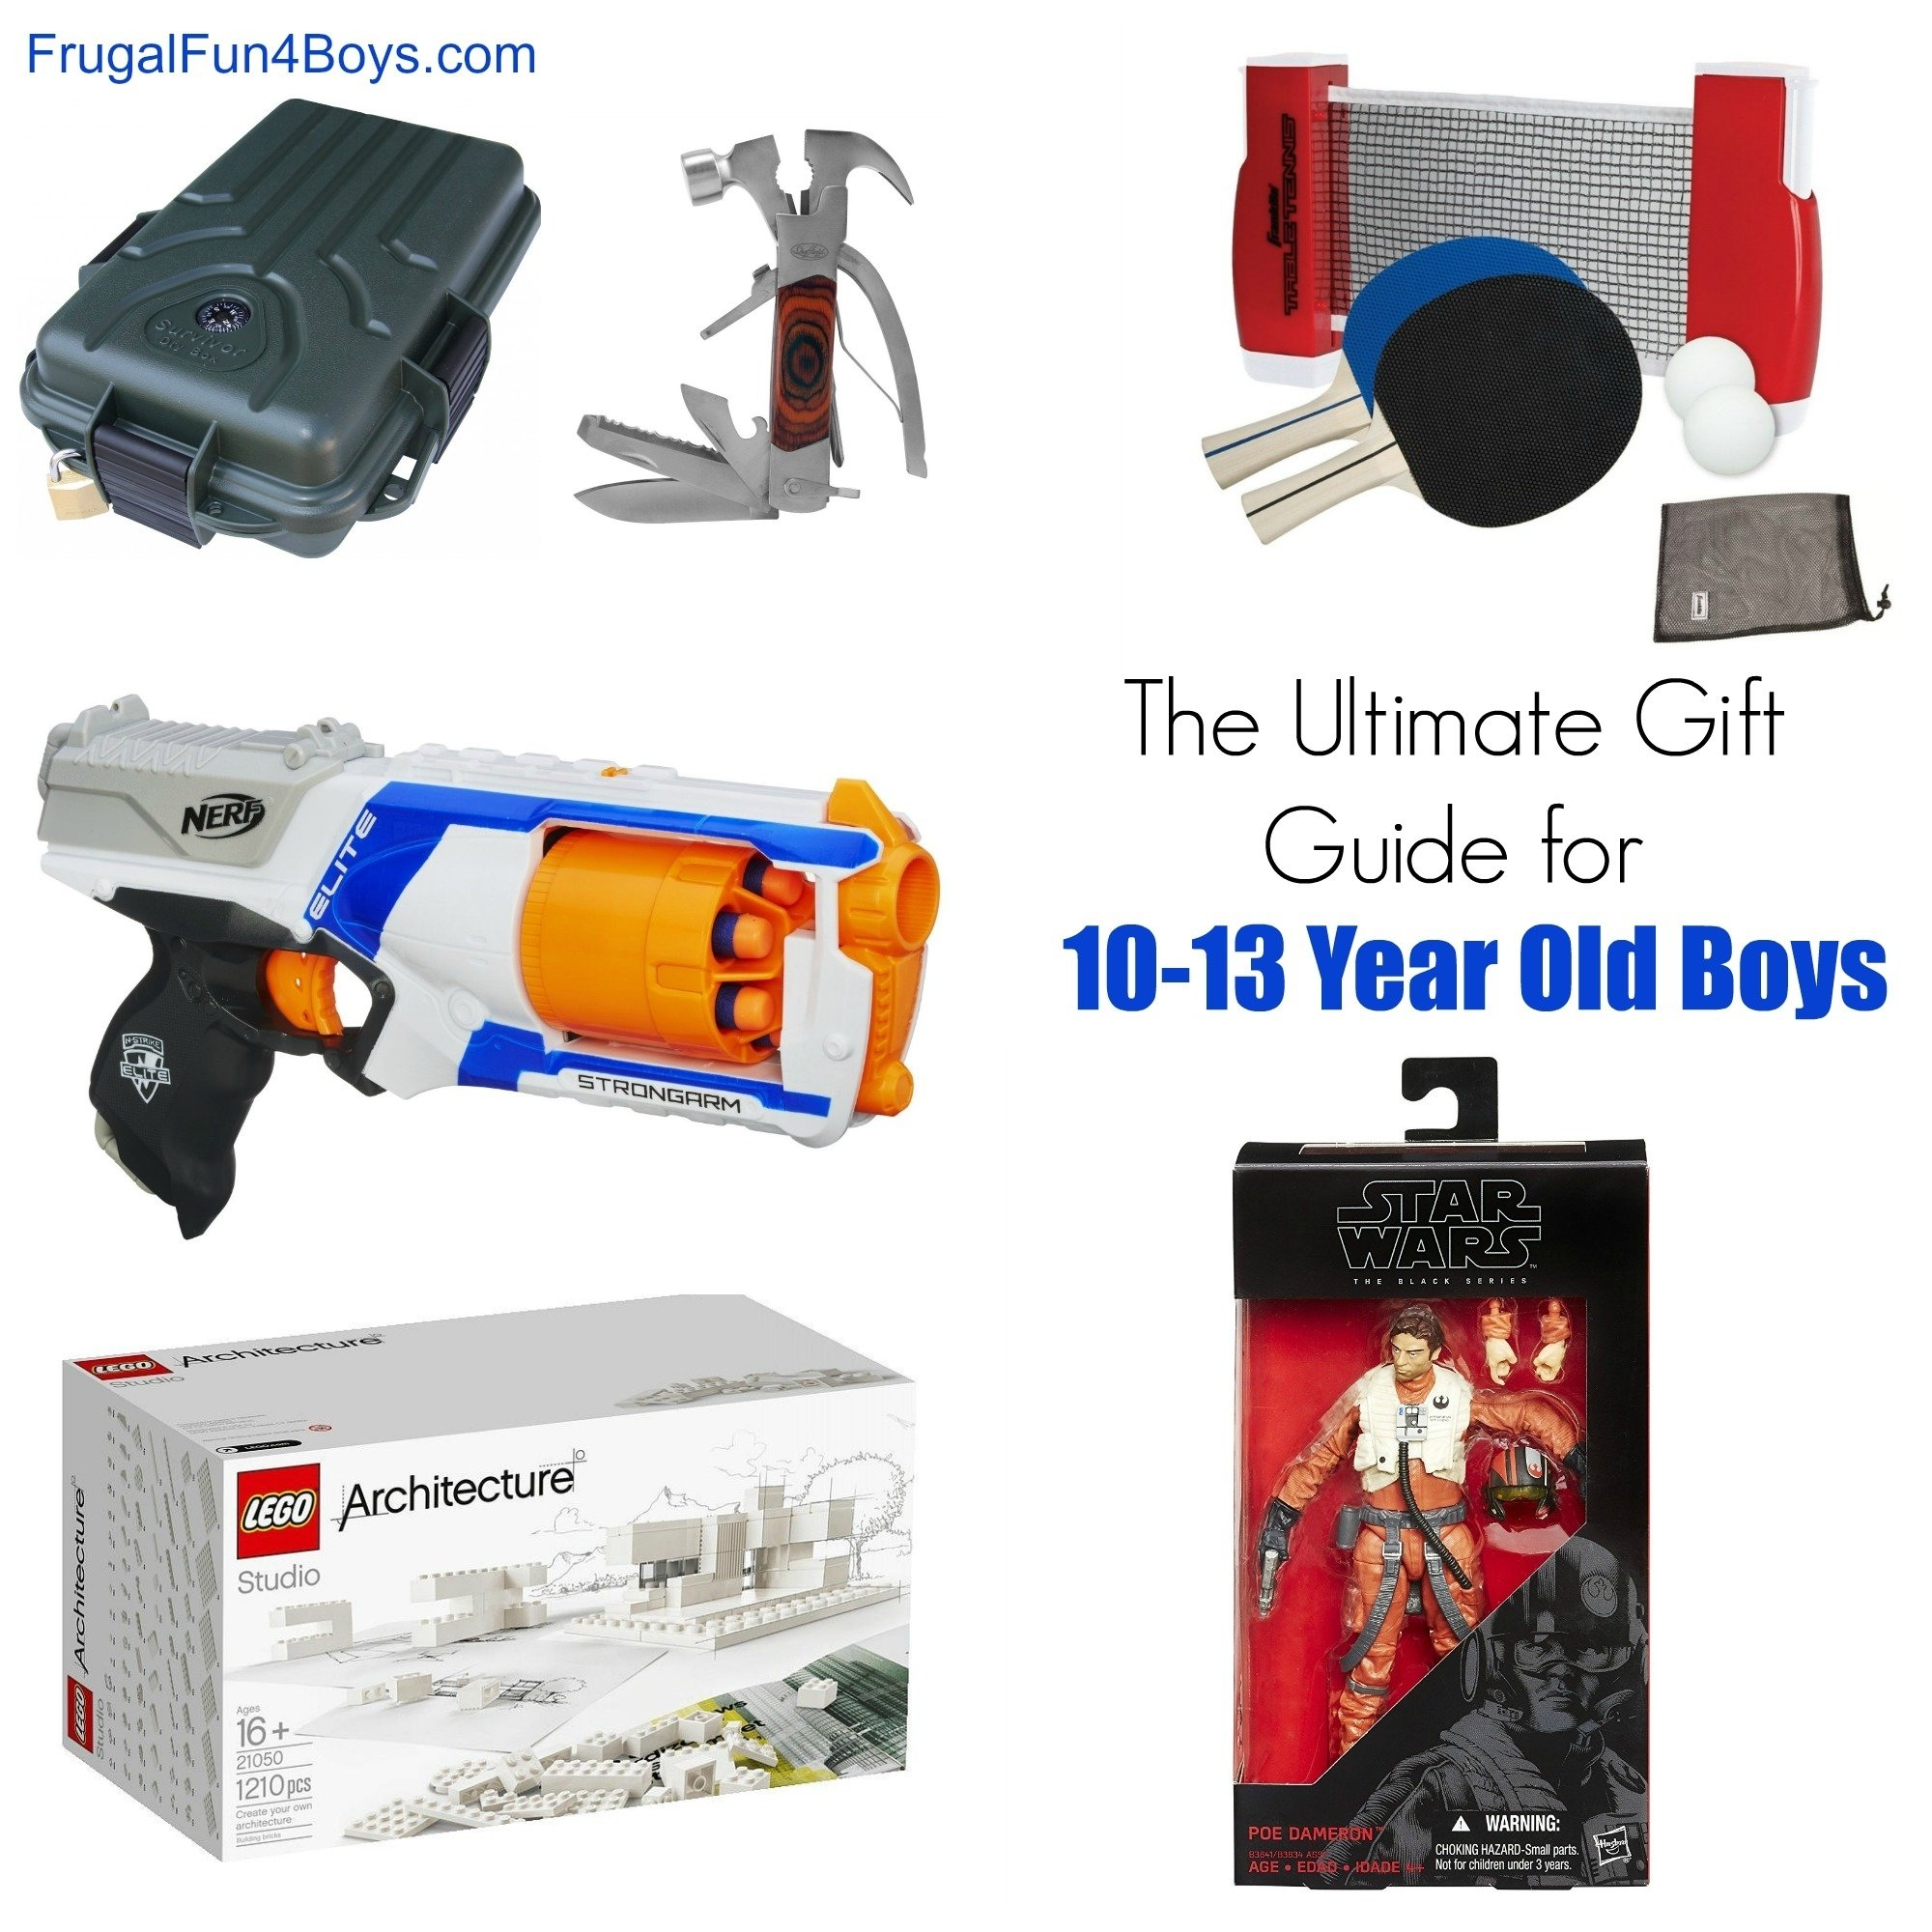 10 Famous Christmas Ideas For 13 Year Old Boys gift ideas for 10 to 13 year old boys 26 2020